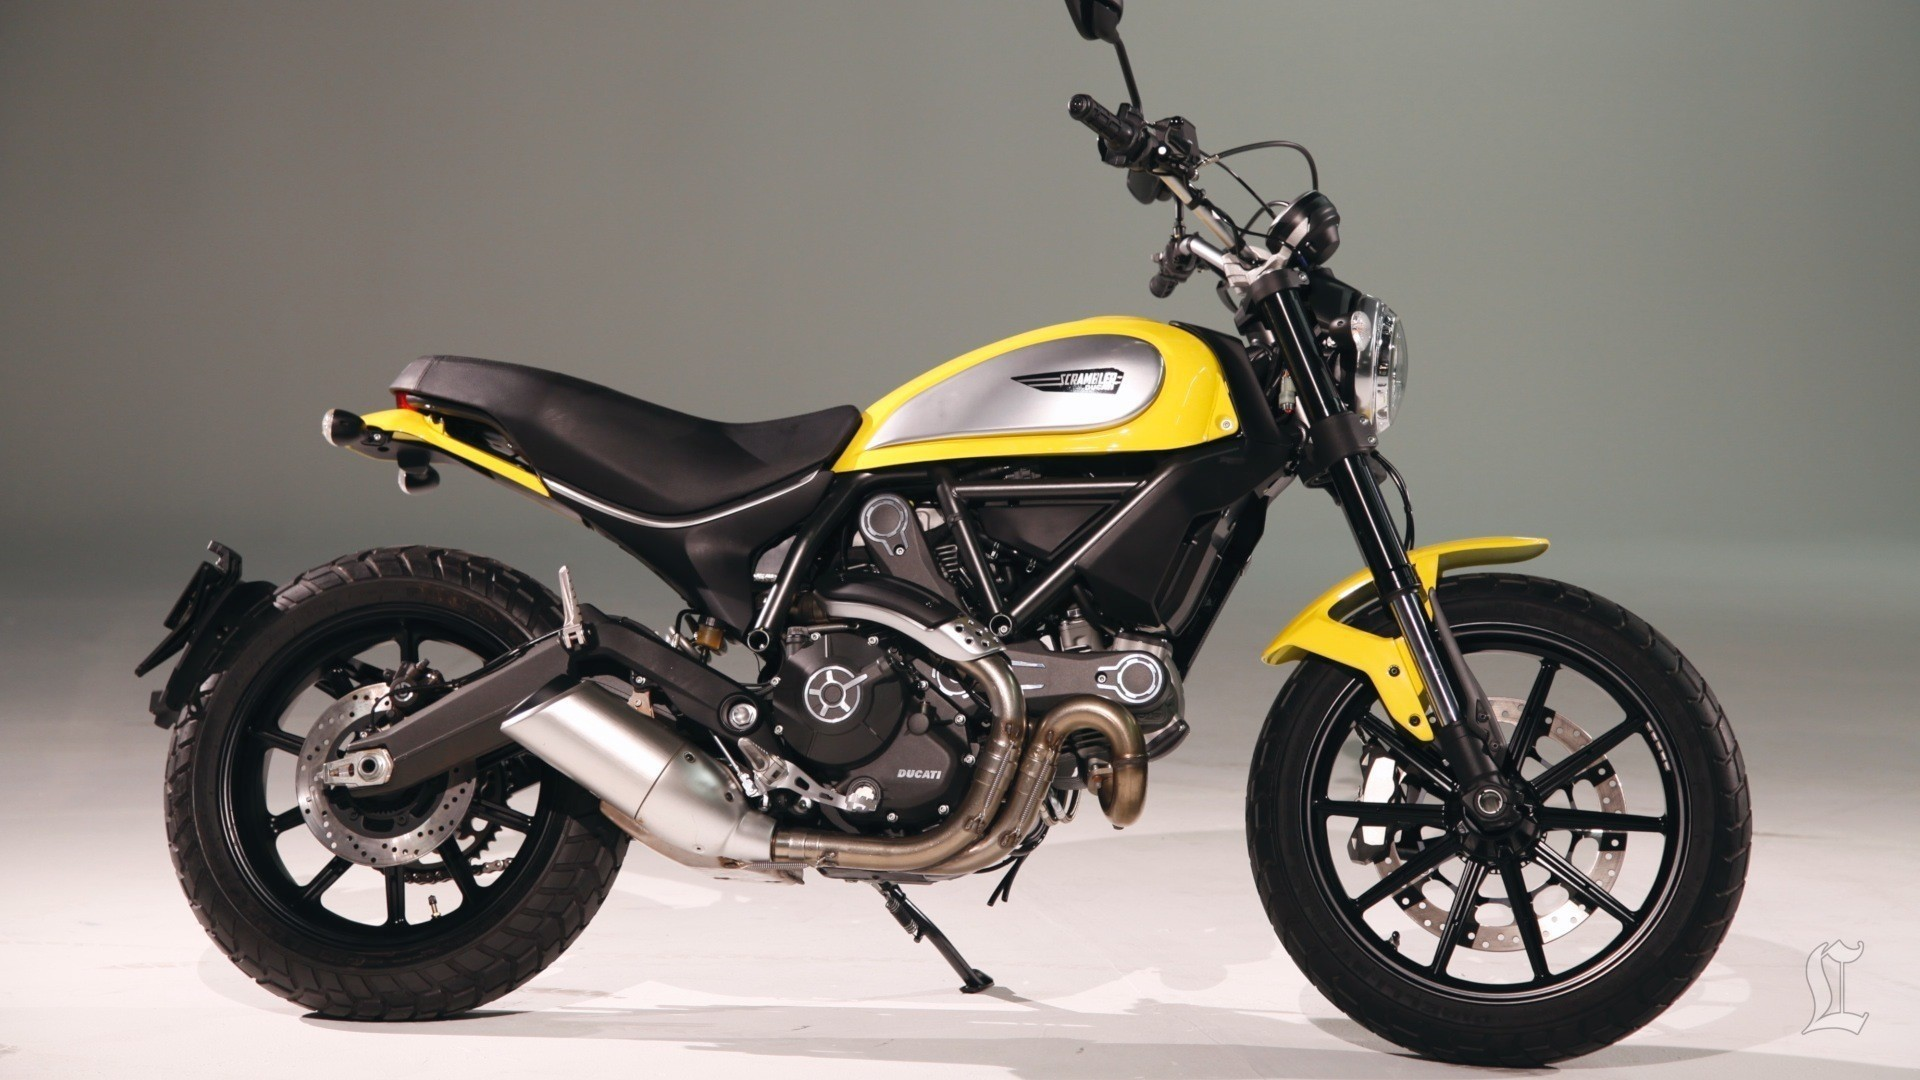 1920x1080 Black and yellow bike Ducati Scrambler